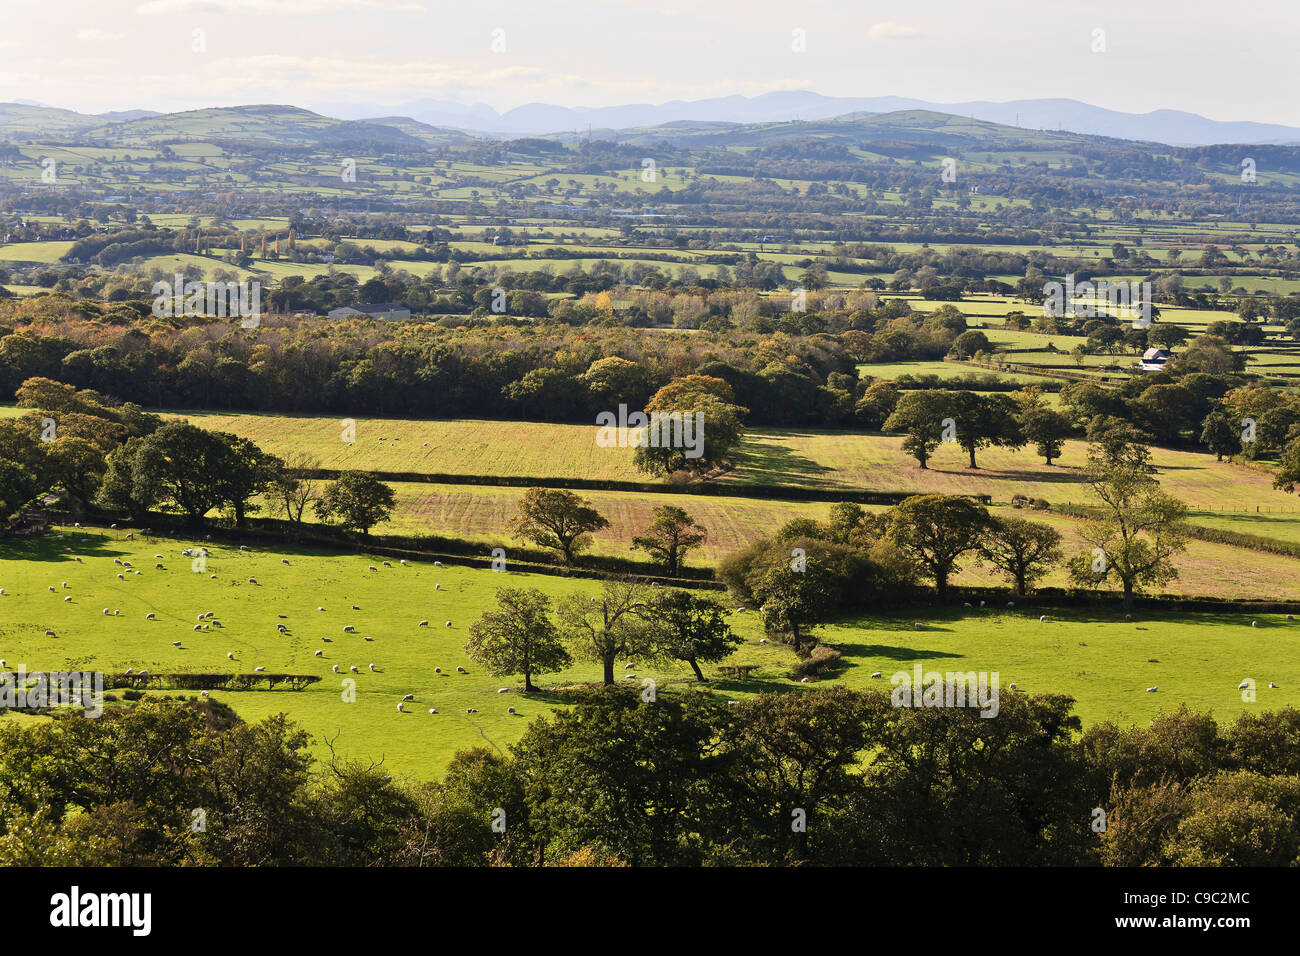 View across Vale of Clwyd from near Rhuallt towards the Snowdon Range, Denbighshire, Wales - Stock Image